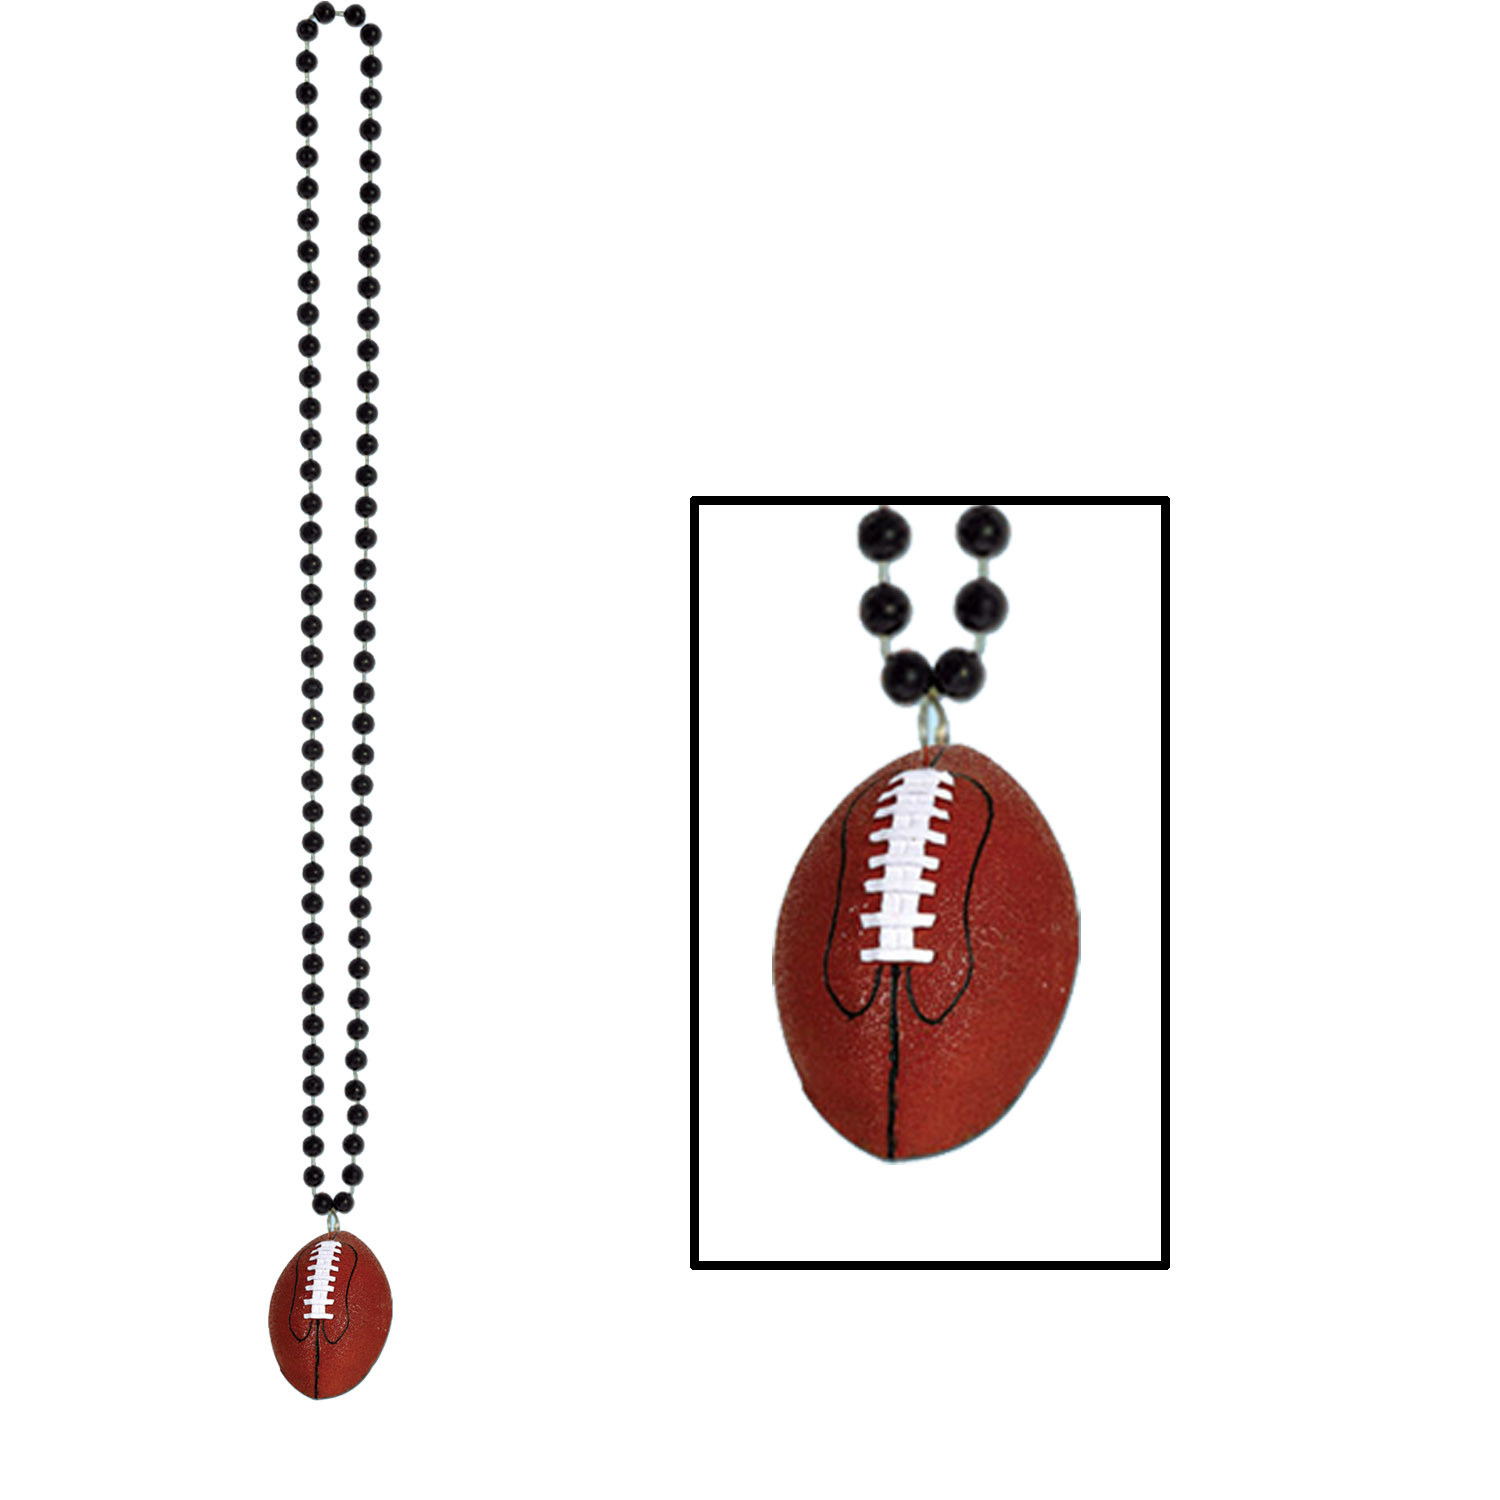 Beads w/Football Medallion (Pack of 12) black, onyx, beads, football, sports, game day, party, team spirit